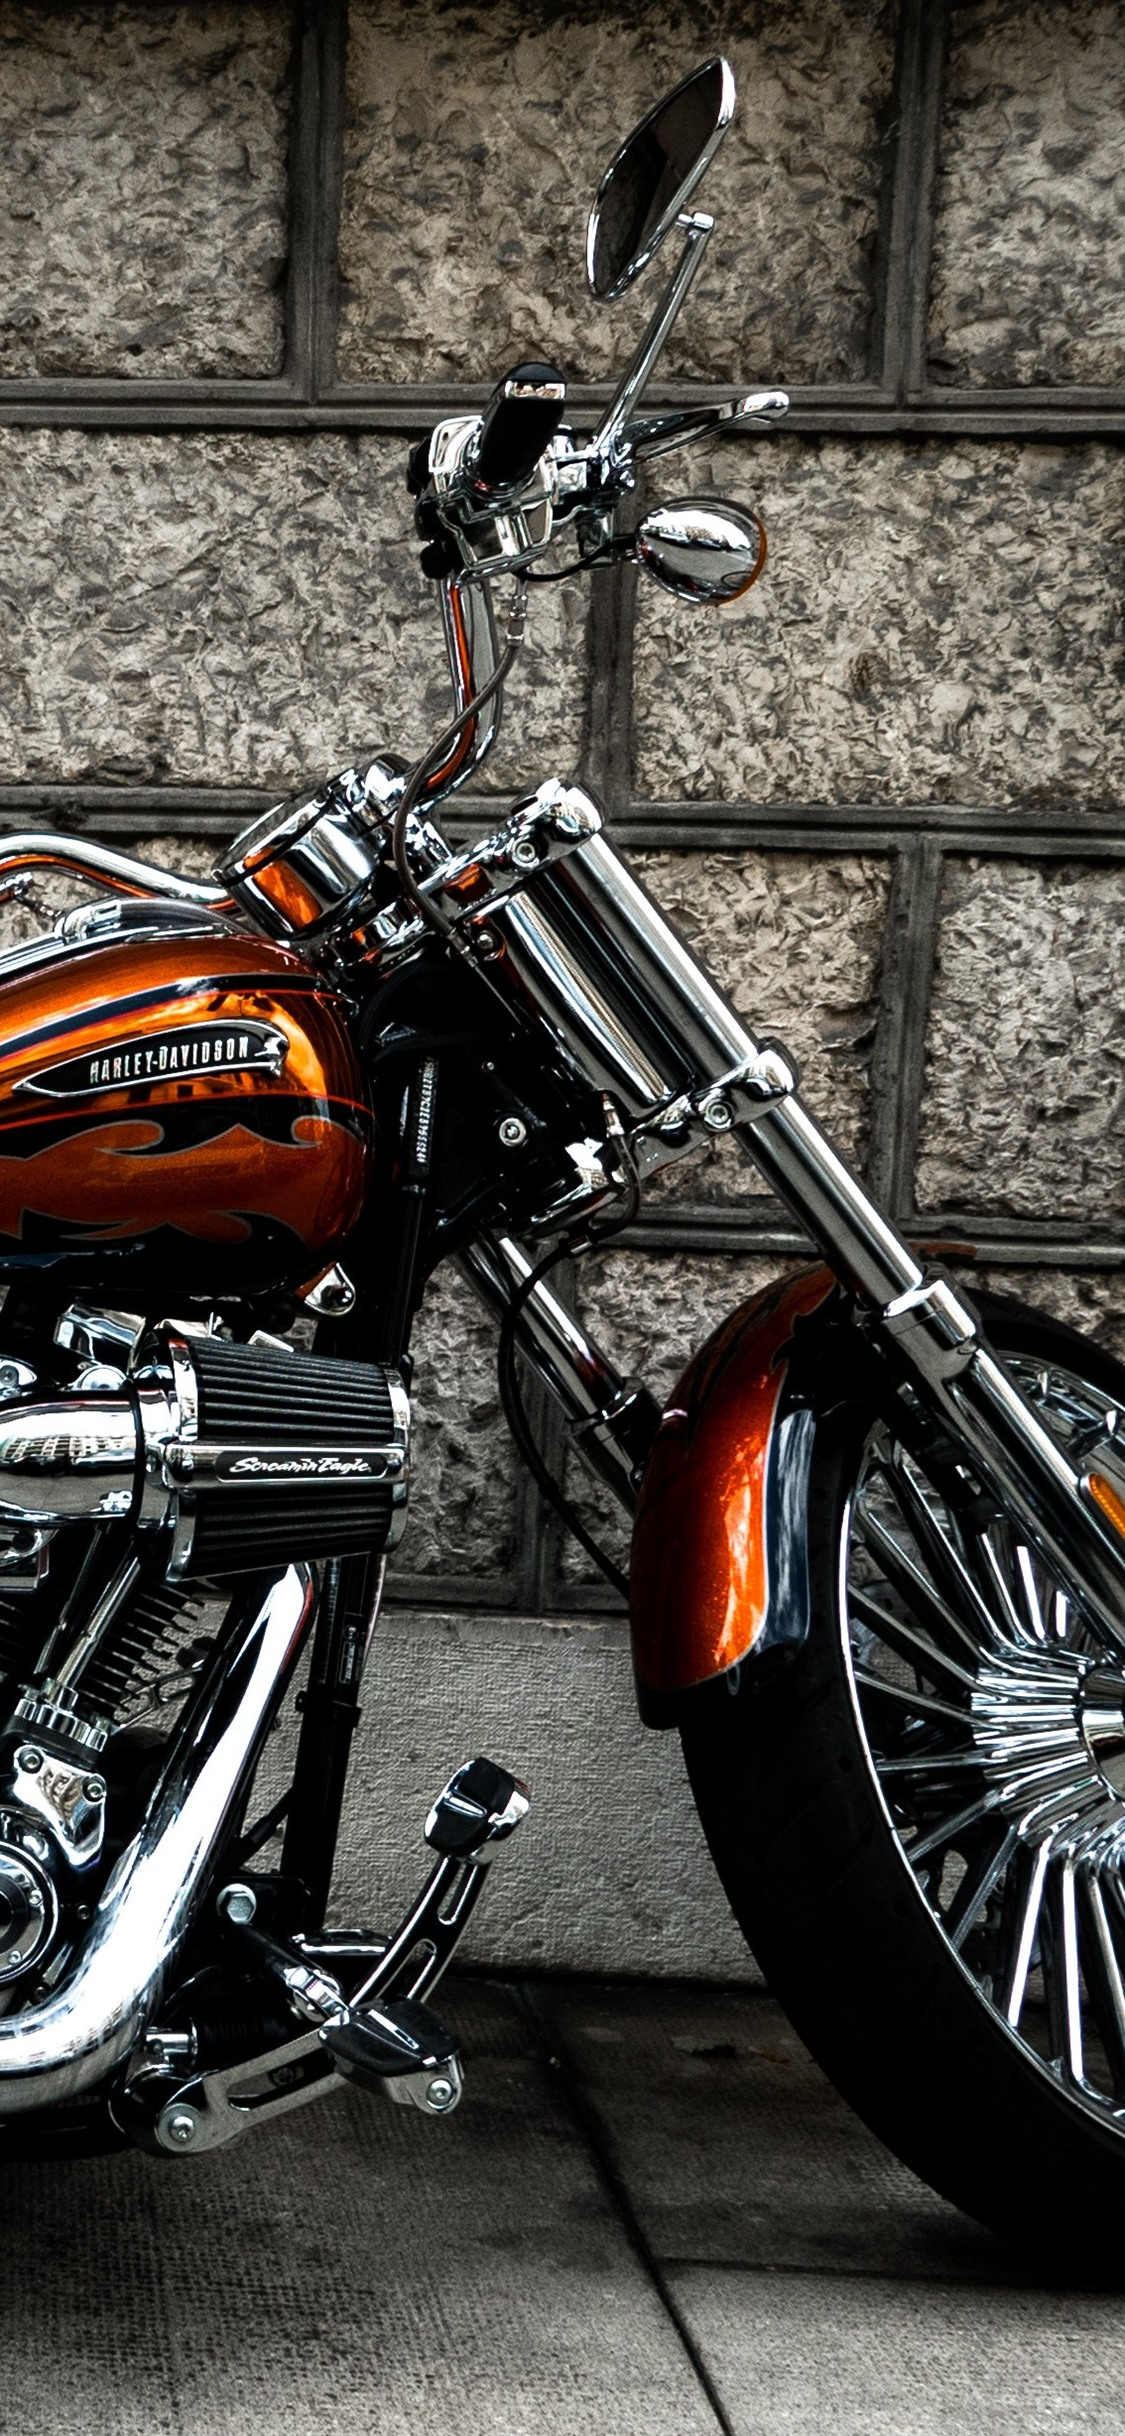 Harley Davidson Motorcycle Side View 1125x2436 Iphone Xs X